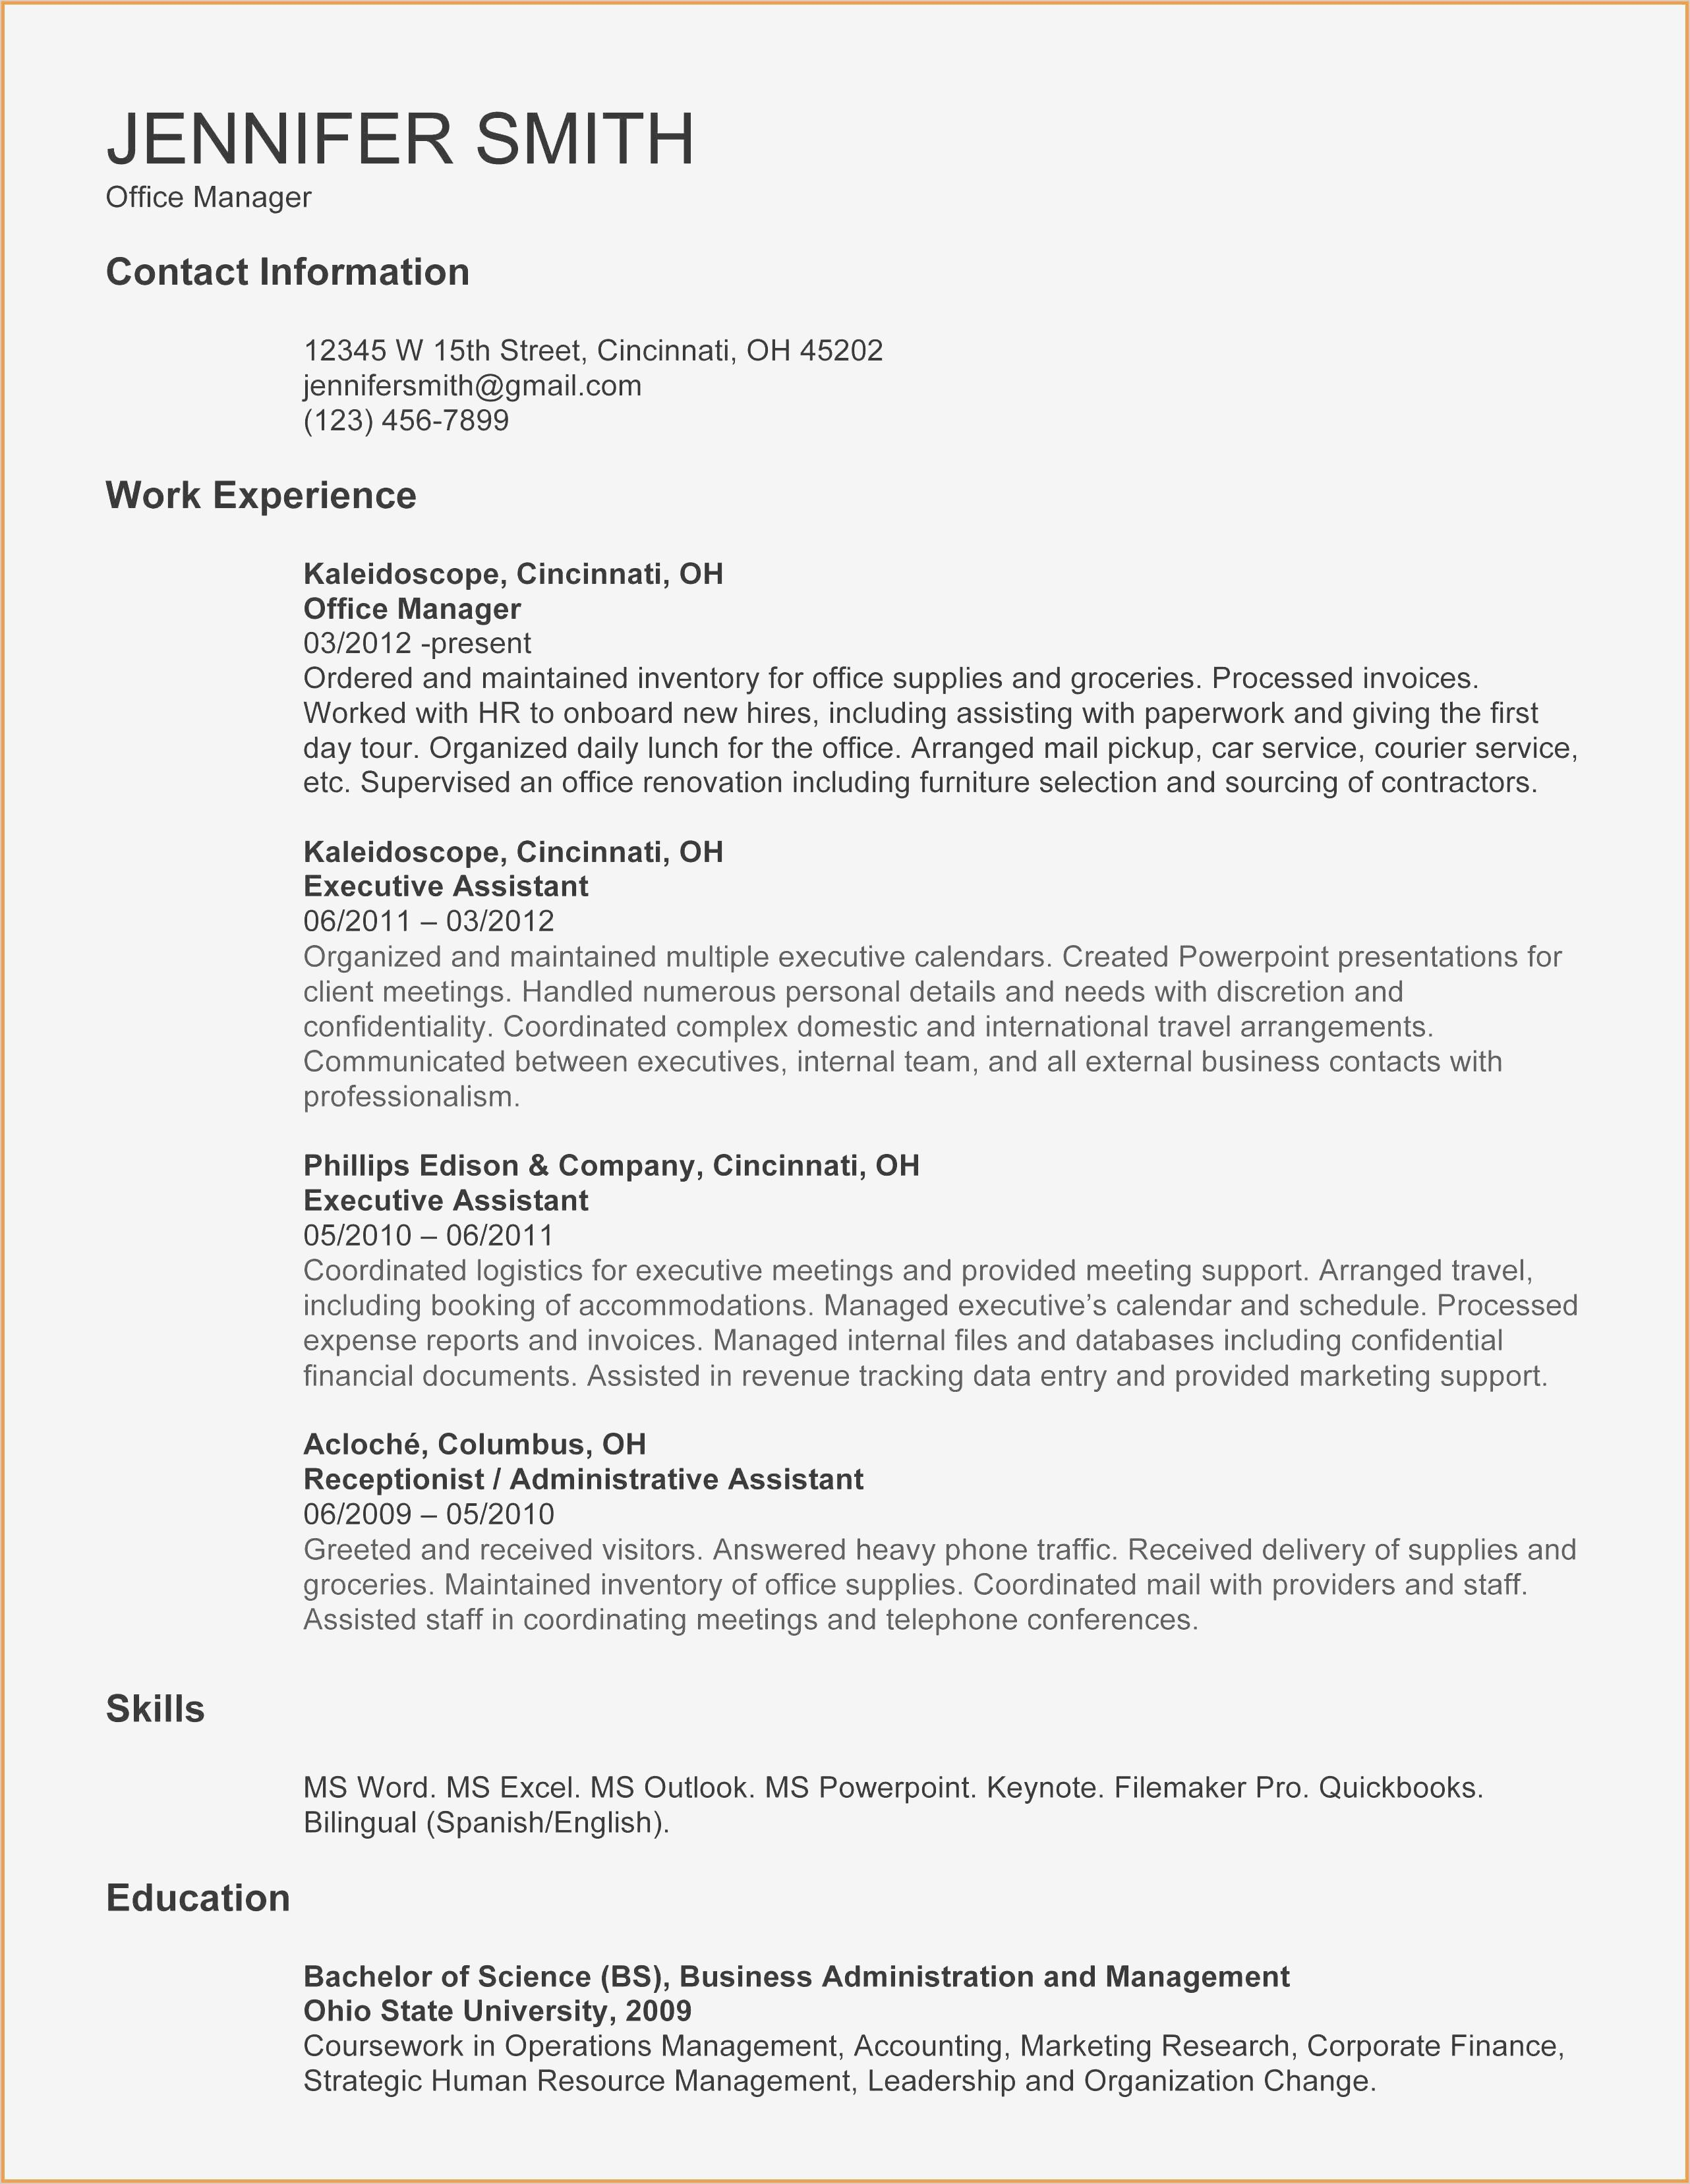 Functional Resume Template For Administrative Assistant